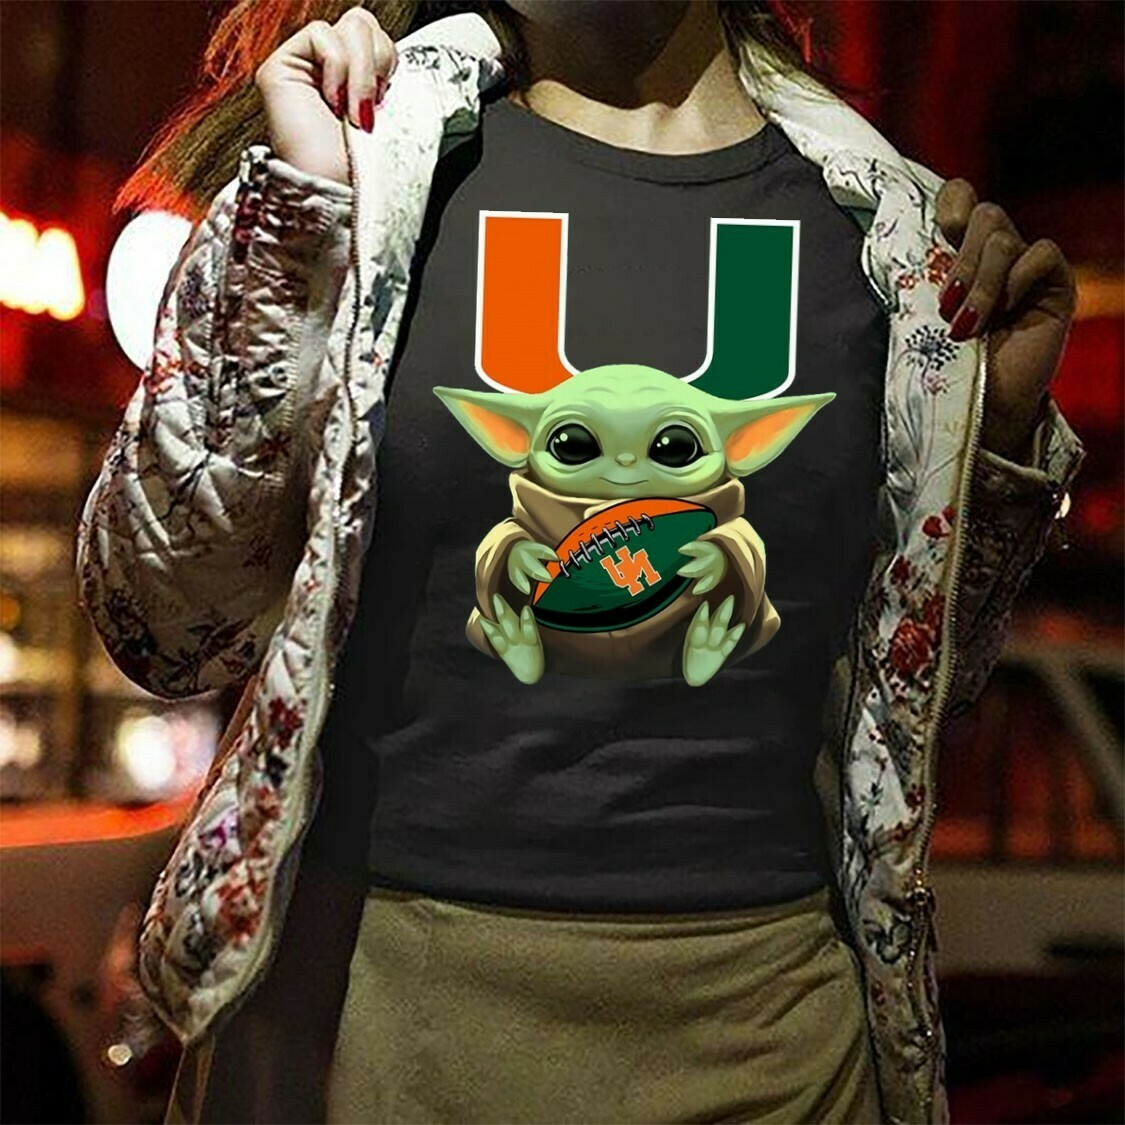 Baby Yoda hugging UM basketball Baby Niners Star Wars The Mandalorian The Child First Memories Floating NFL Football Team Tee T-Shirt Long Sleeve Sweatshirt Hoodie Jolly Family Gifts